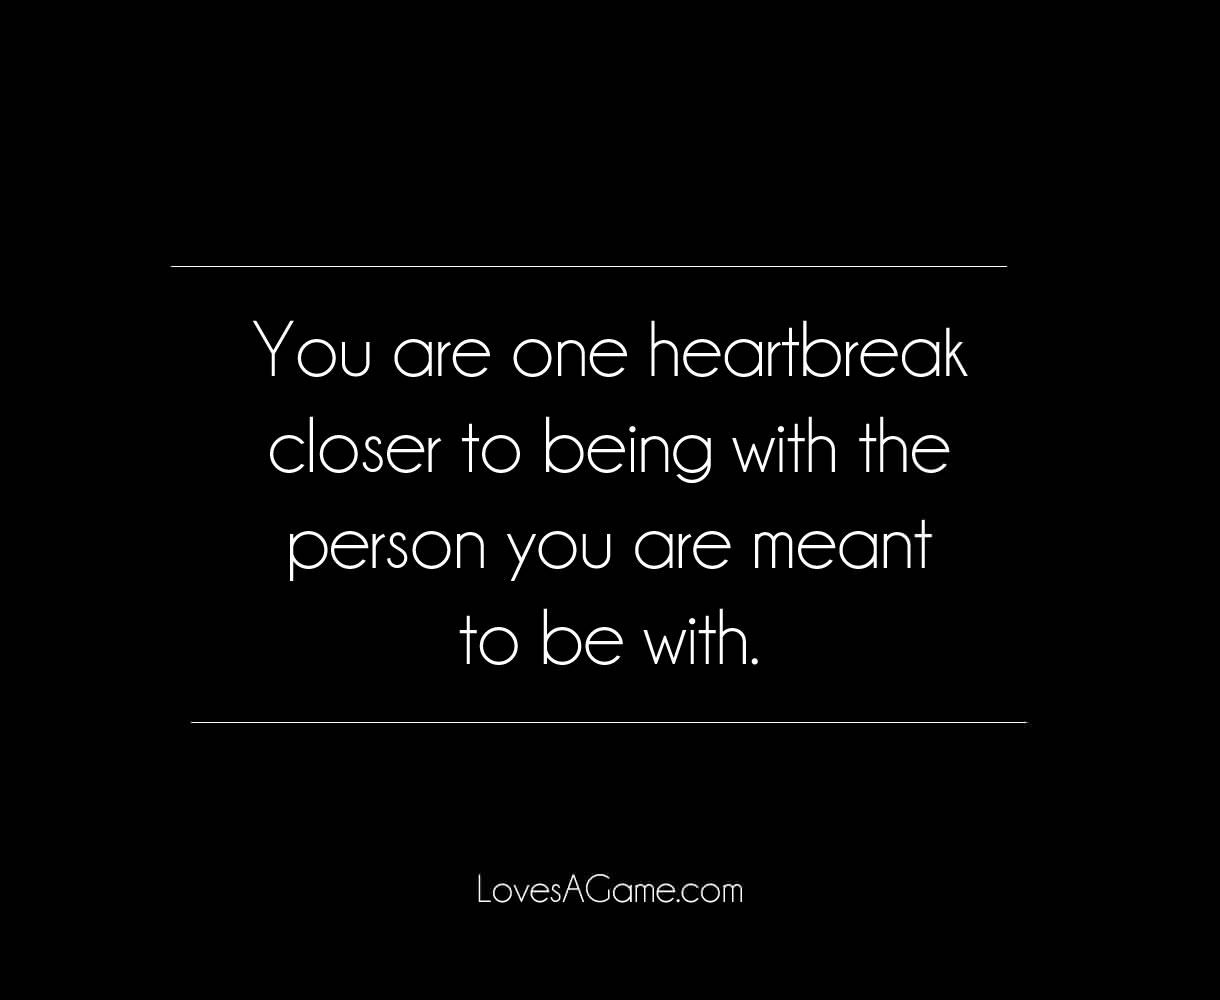 Every Heartbreak Brings You One Step Closer Breakup Quotes Up Quotes New Quotes